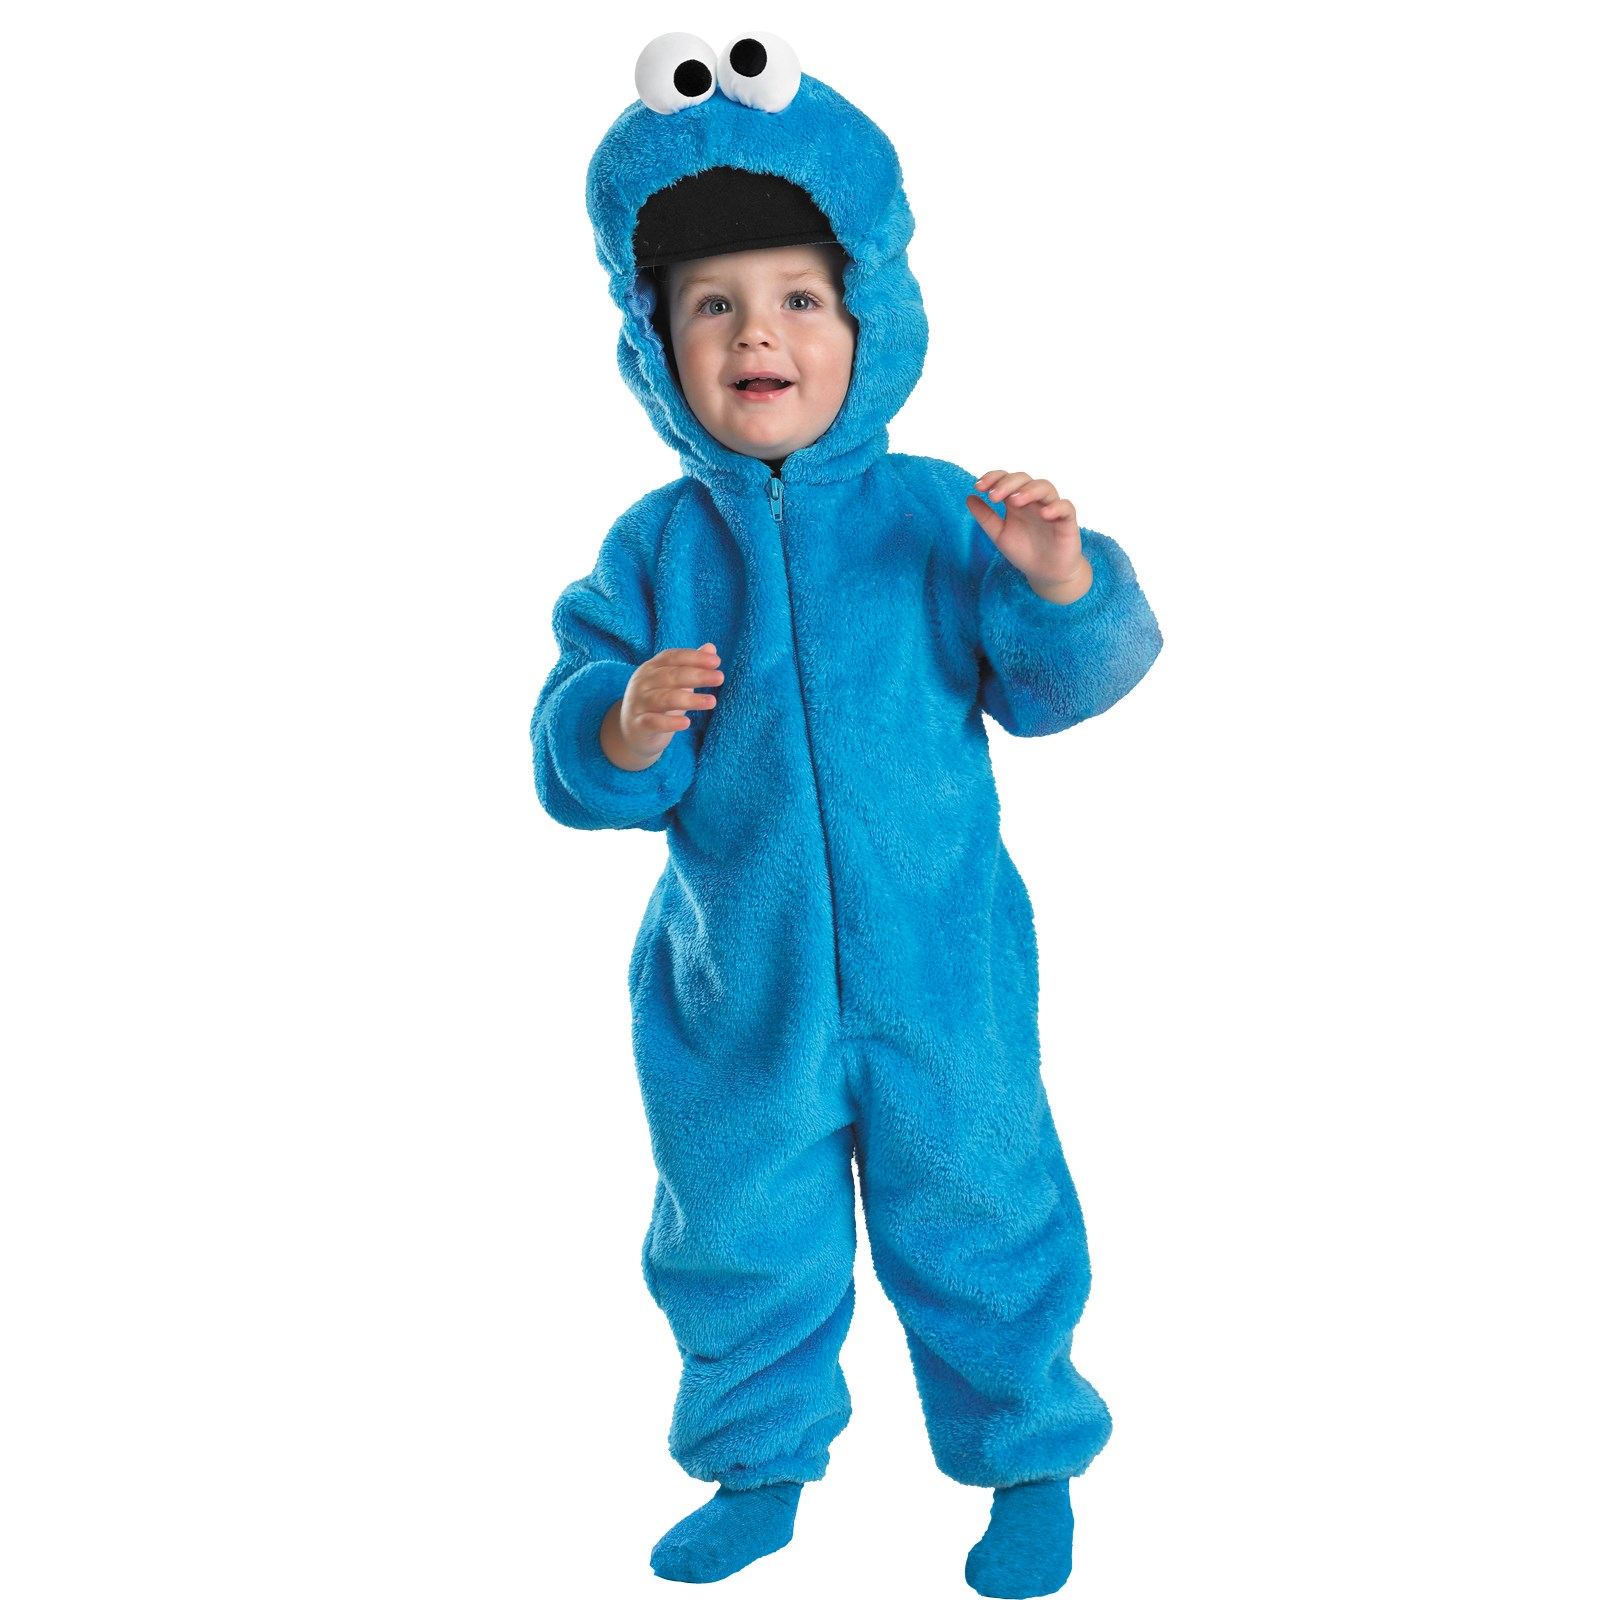 Sesame Street Cookie Monster Infant / Toddler / Child Costume Toddler (3T-4T)